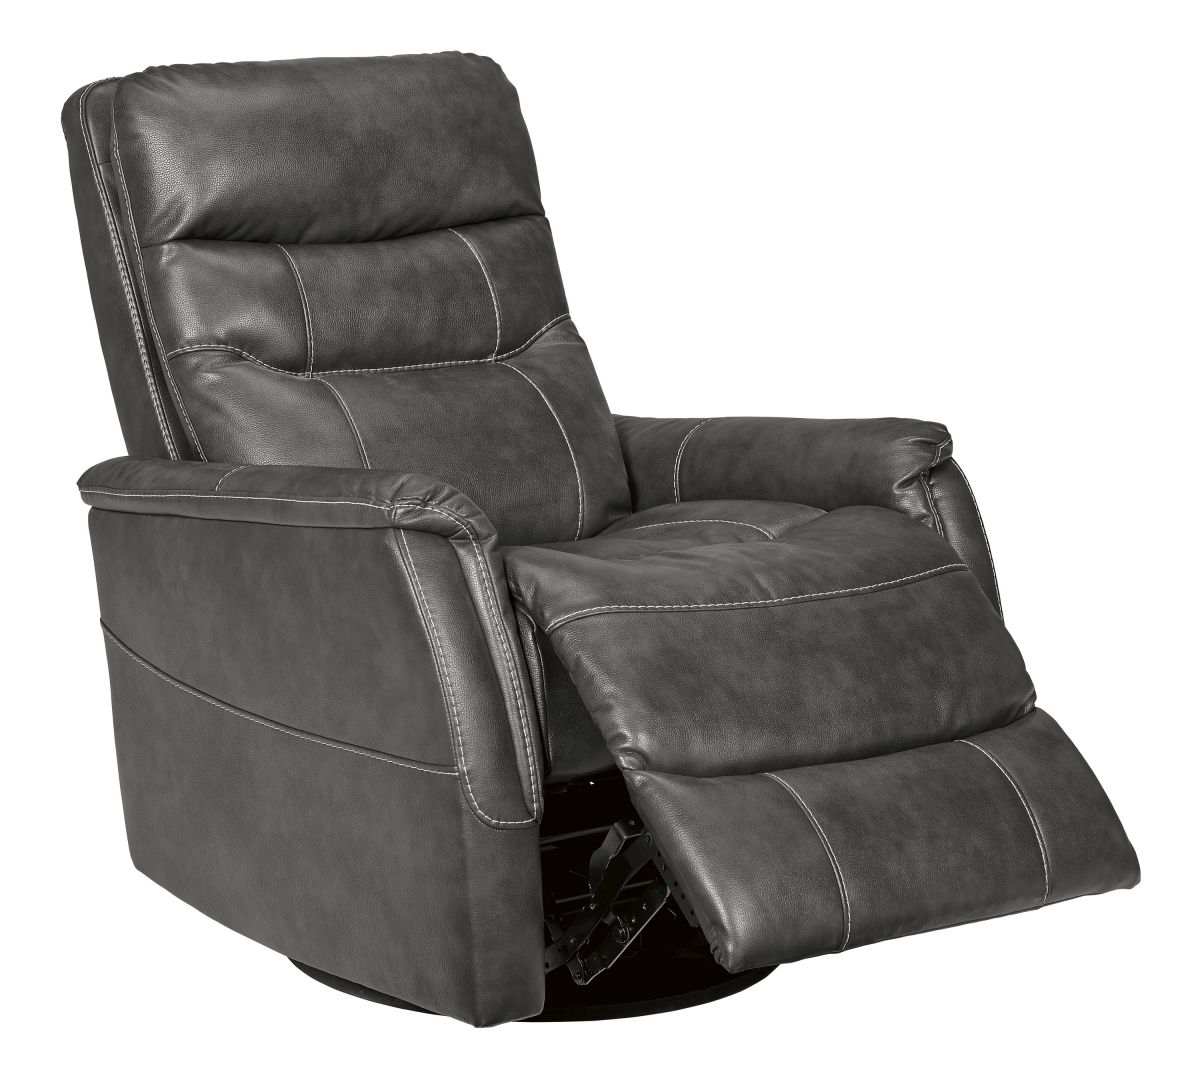 Picture of Riptyme Recliner